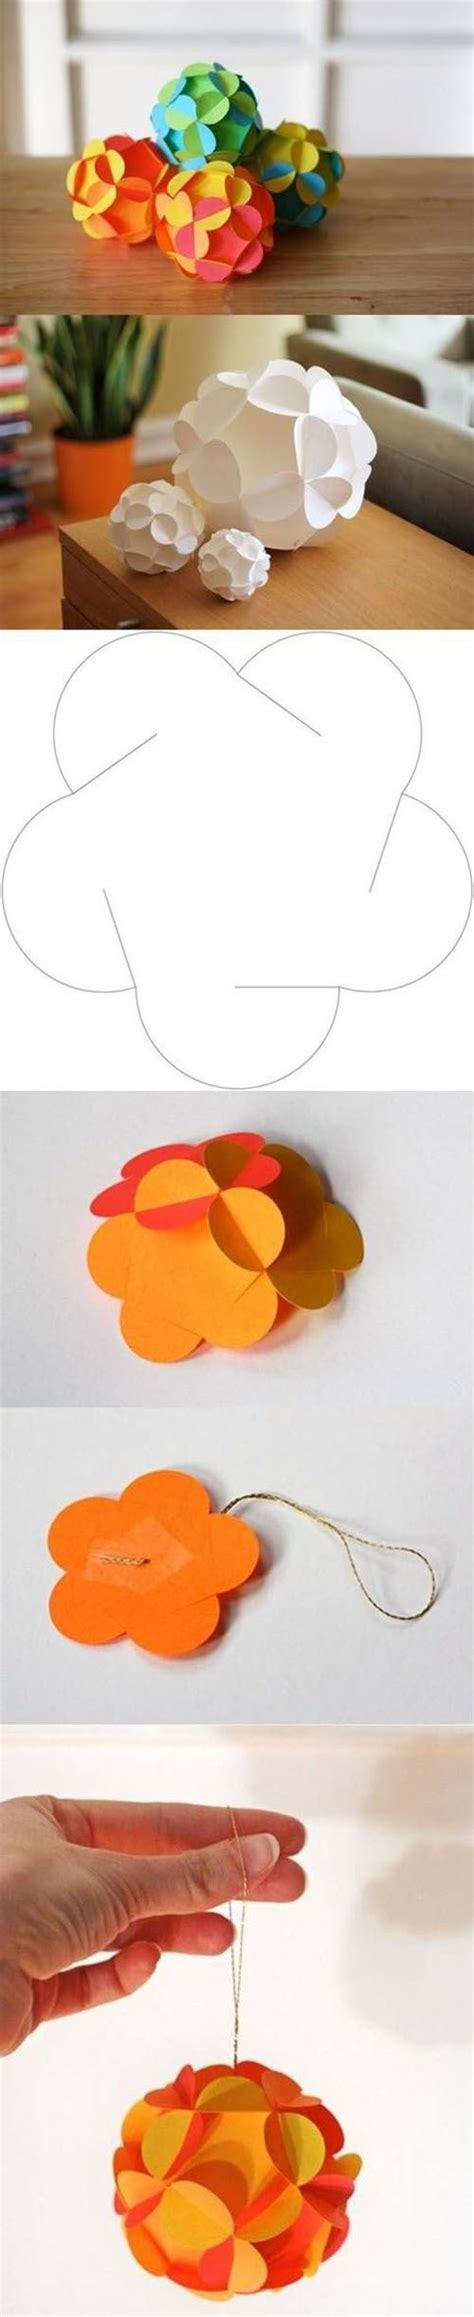 beautiful paper craft beautiful paper craft diy crafts projects to try